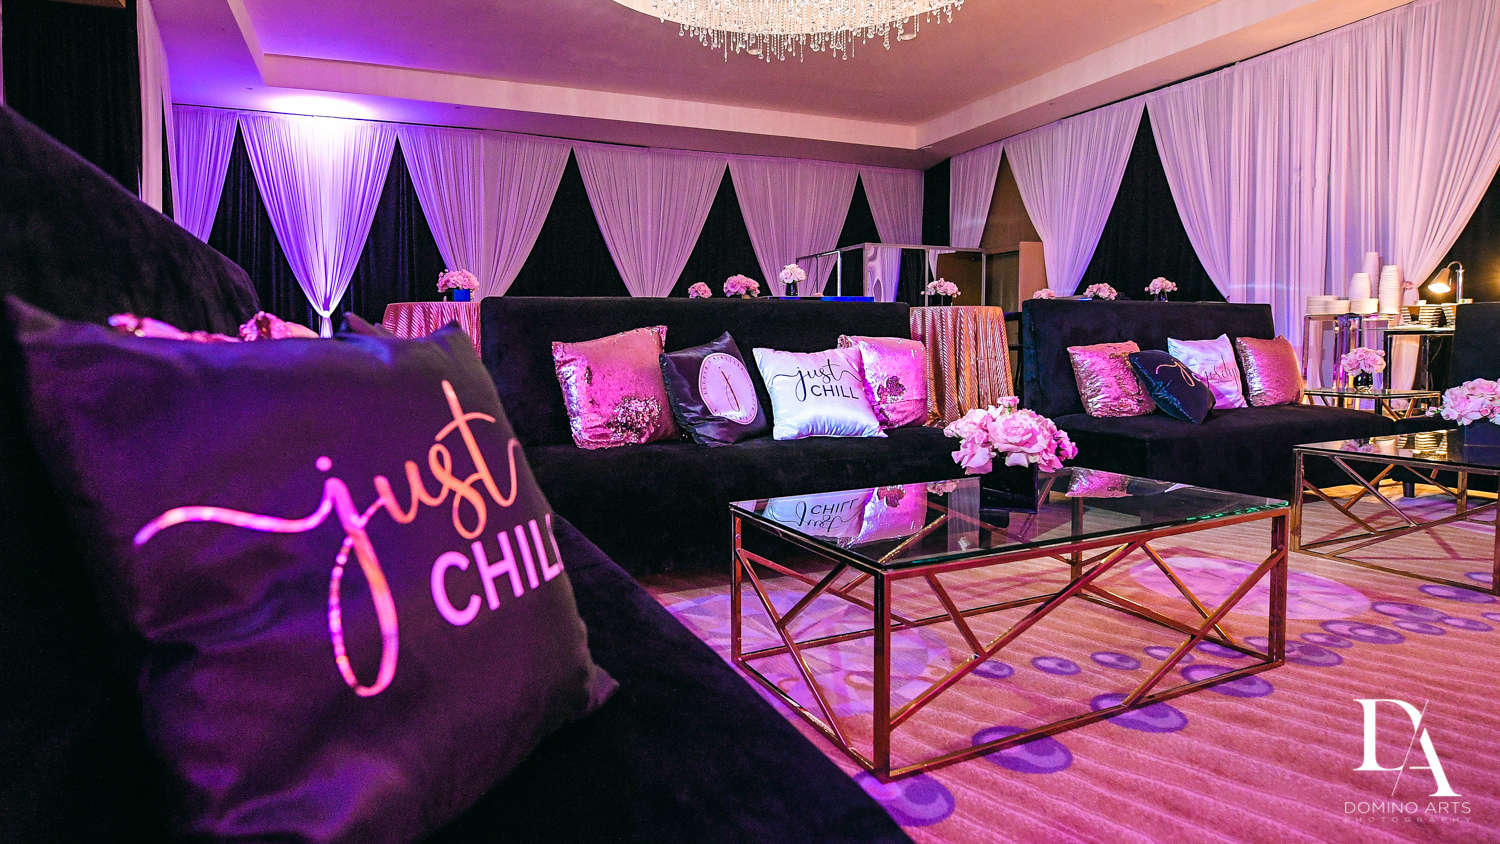 customized pillows at Masquerade Ball Bat Mitzvah at Ritz Carlton Fort Lauderdale by Domino Arts Photography